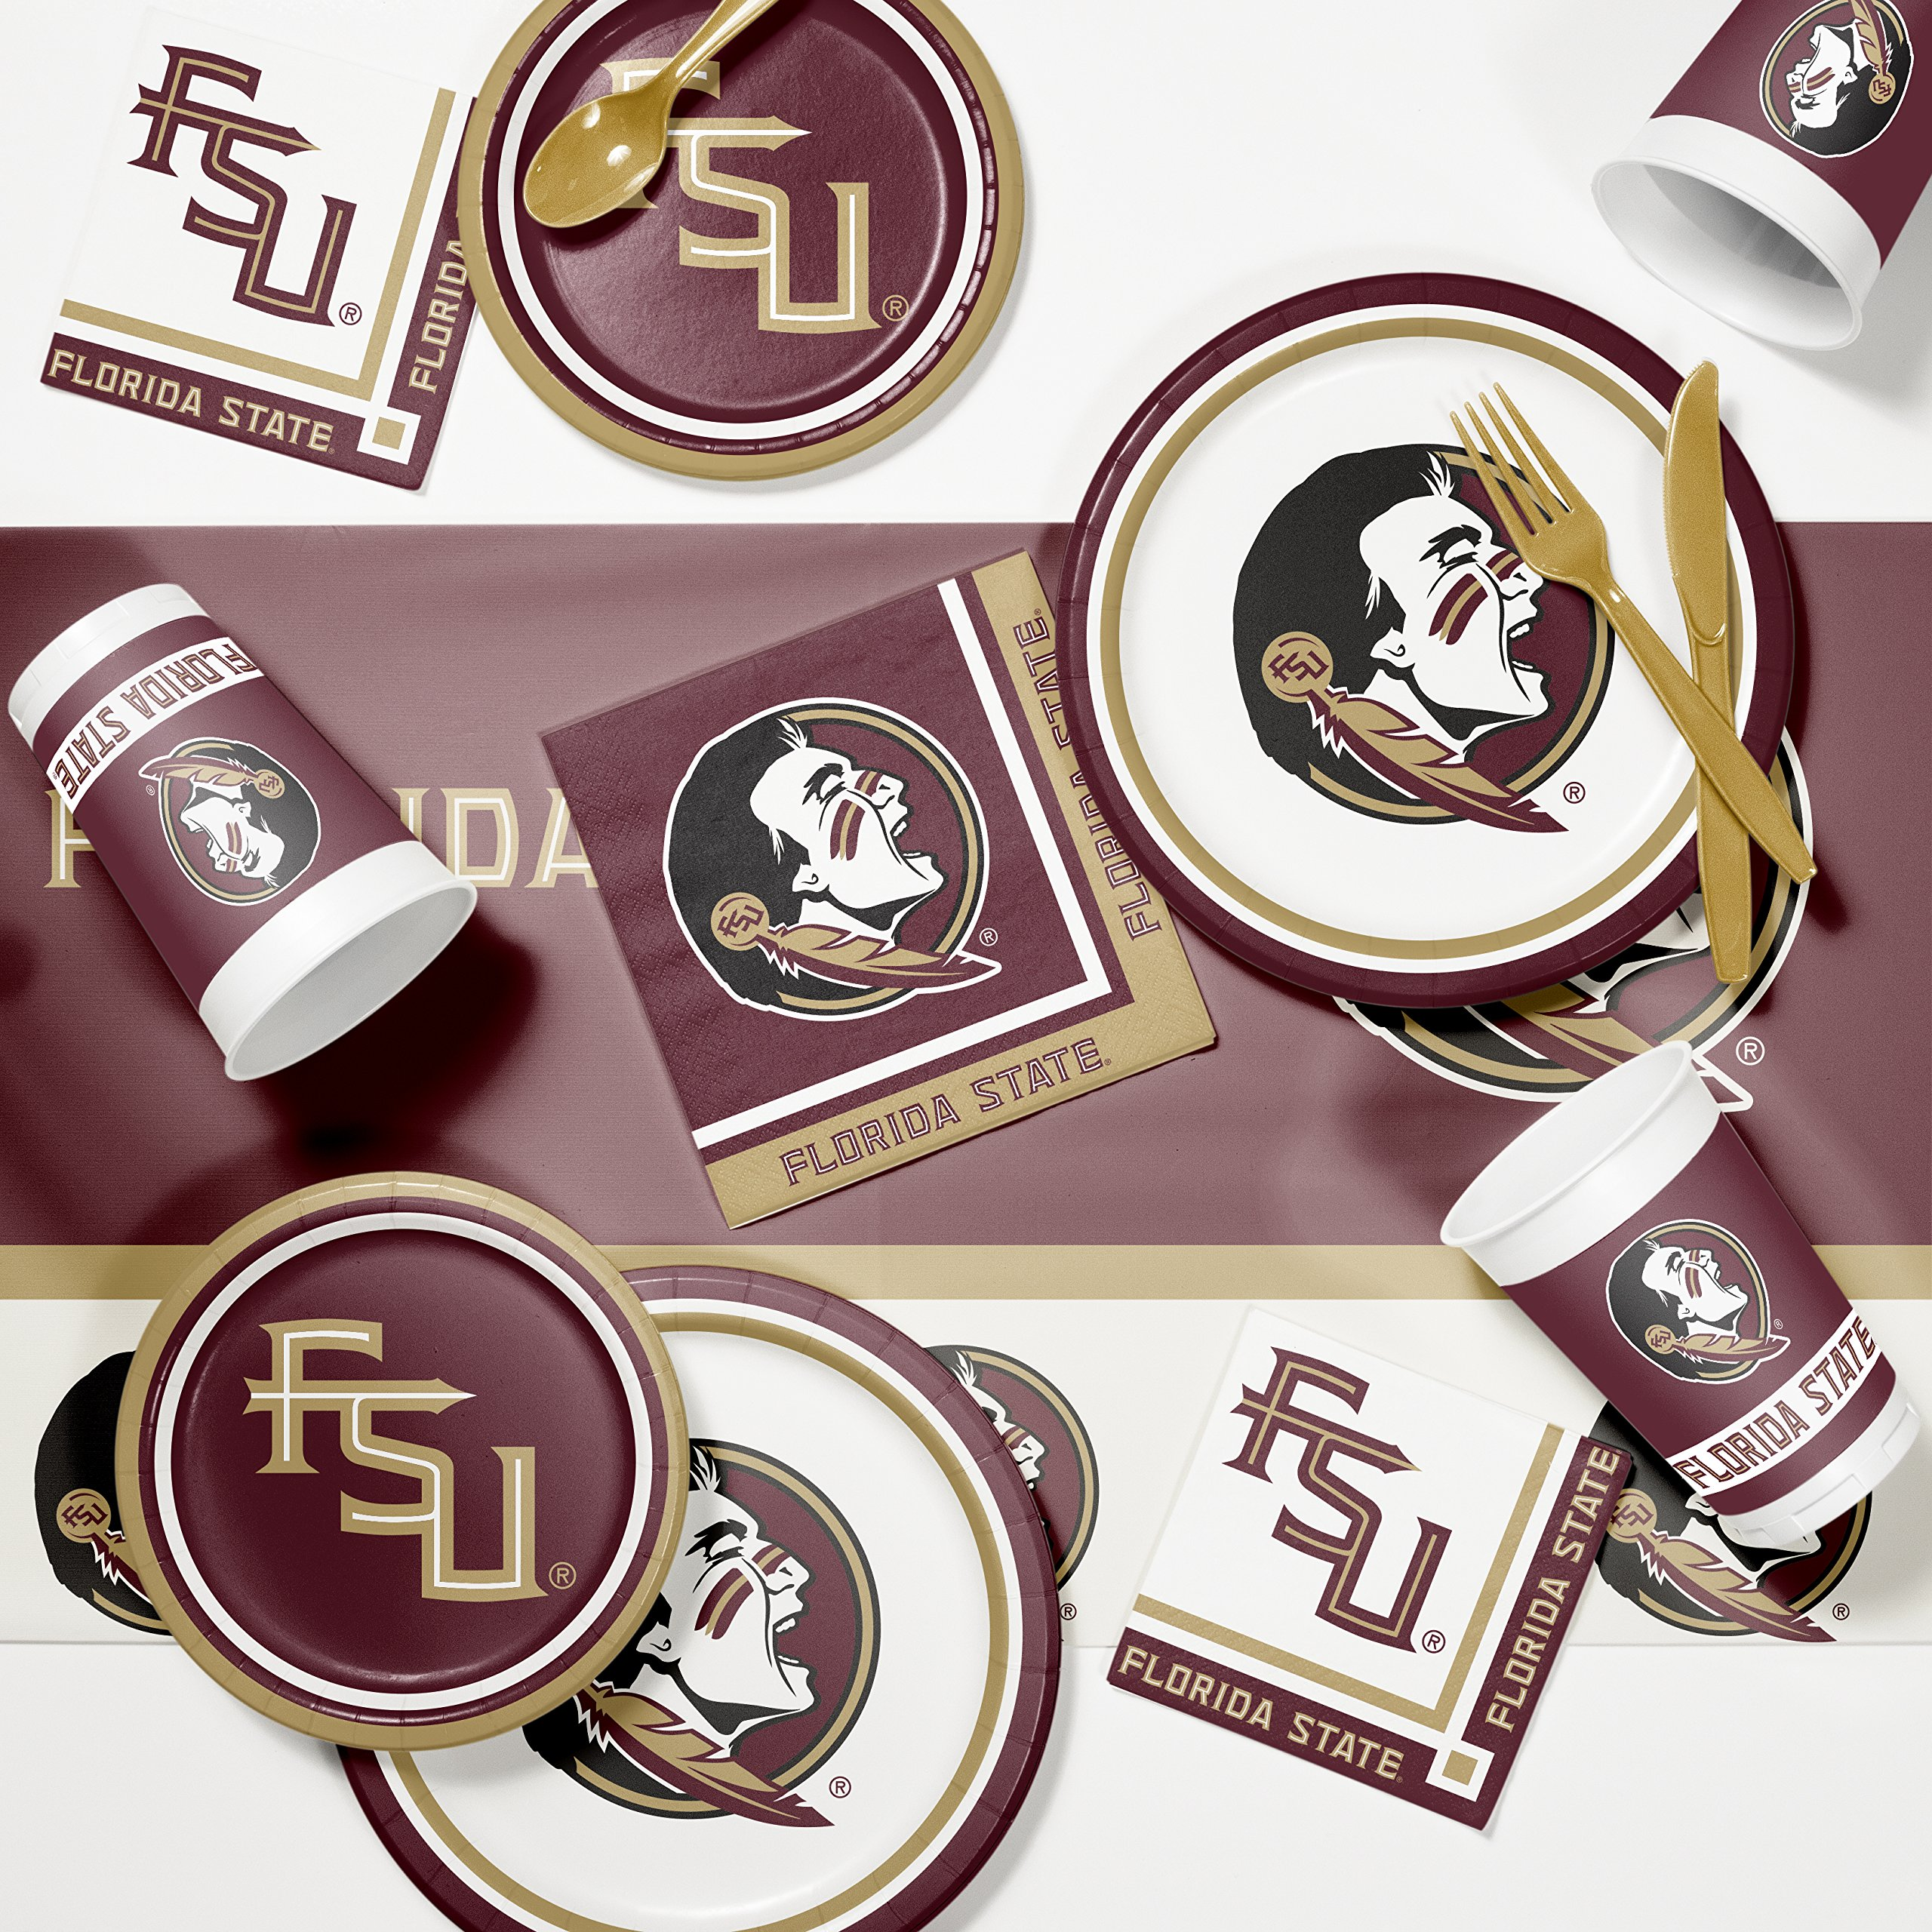 NCAA Florida State Game Day Party Supplies Kit